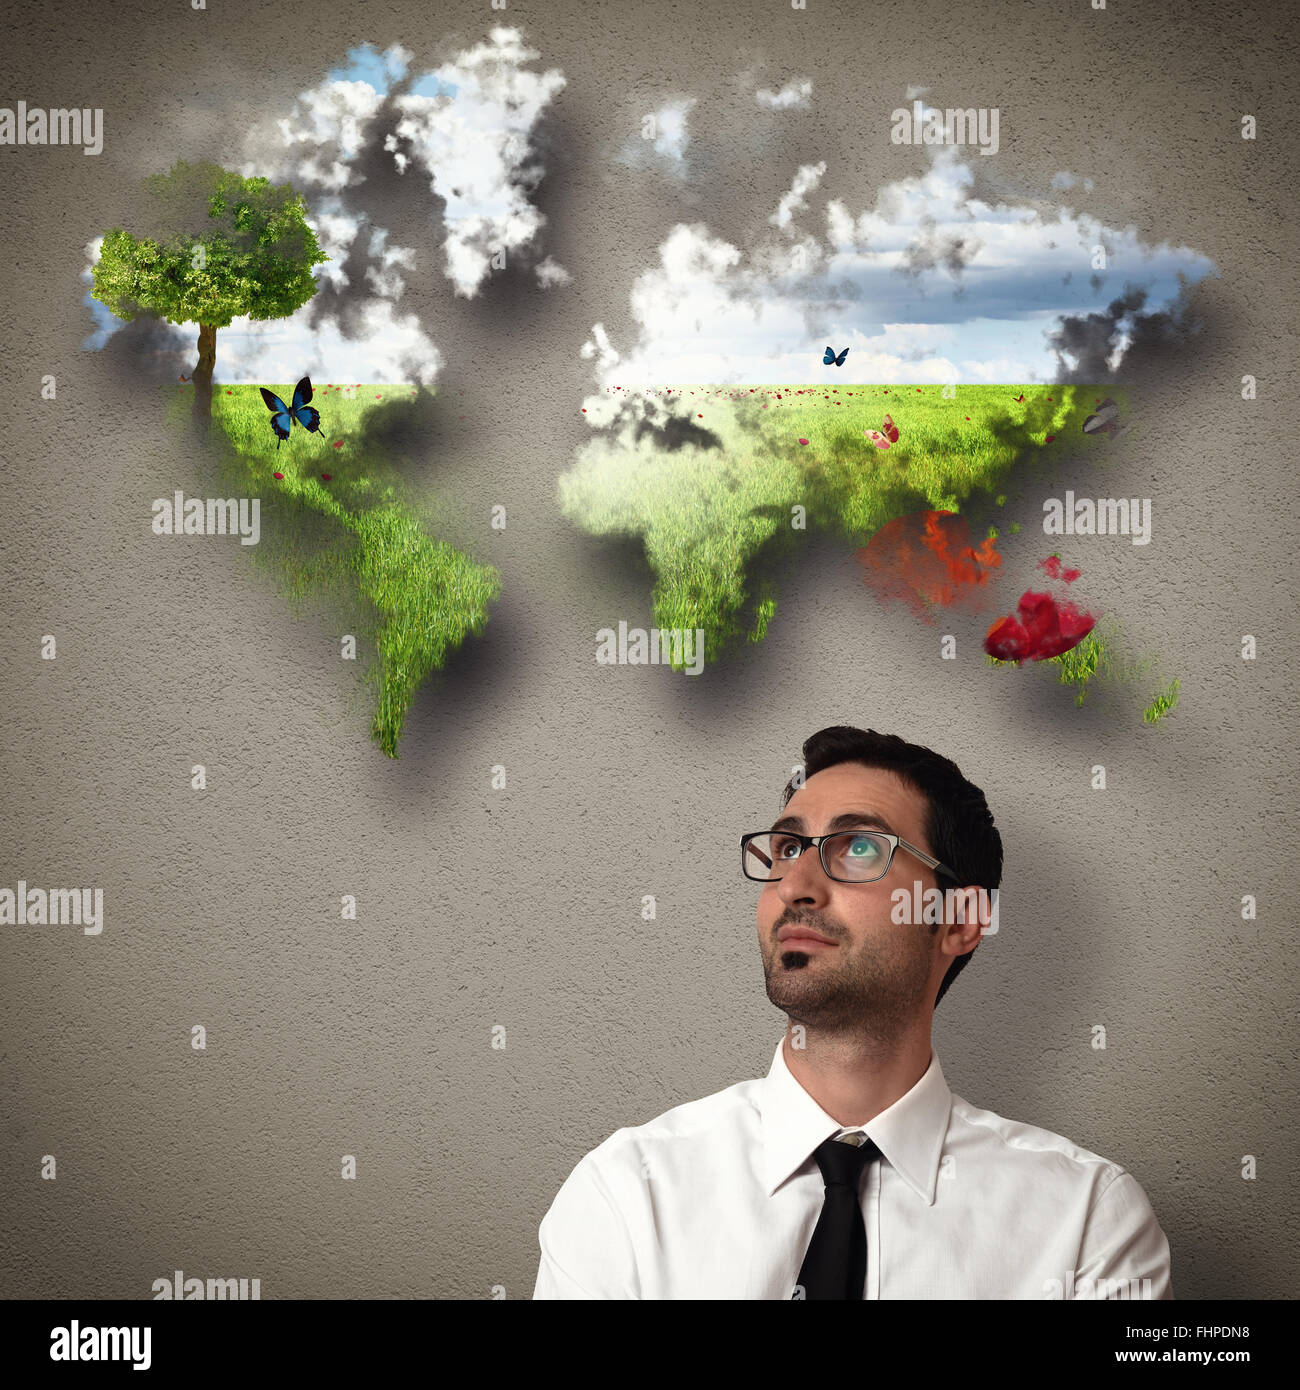 Businessman imagines a clean world - Stock Image